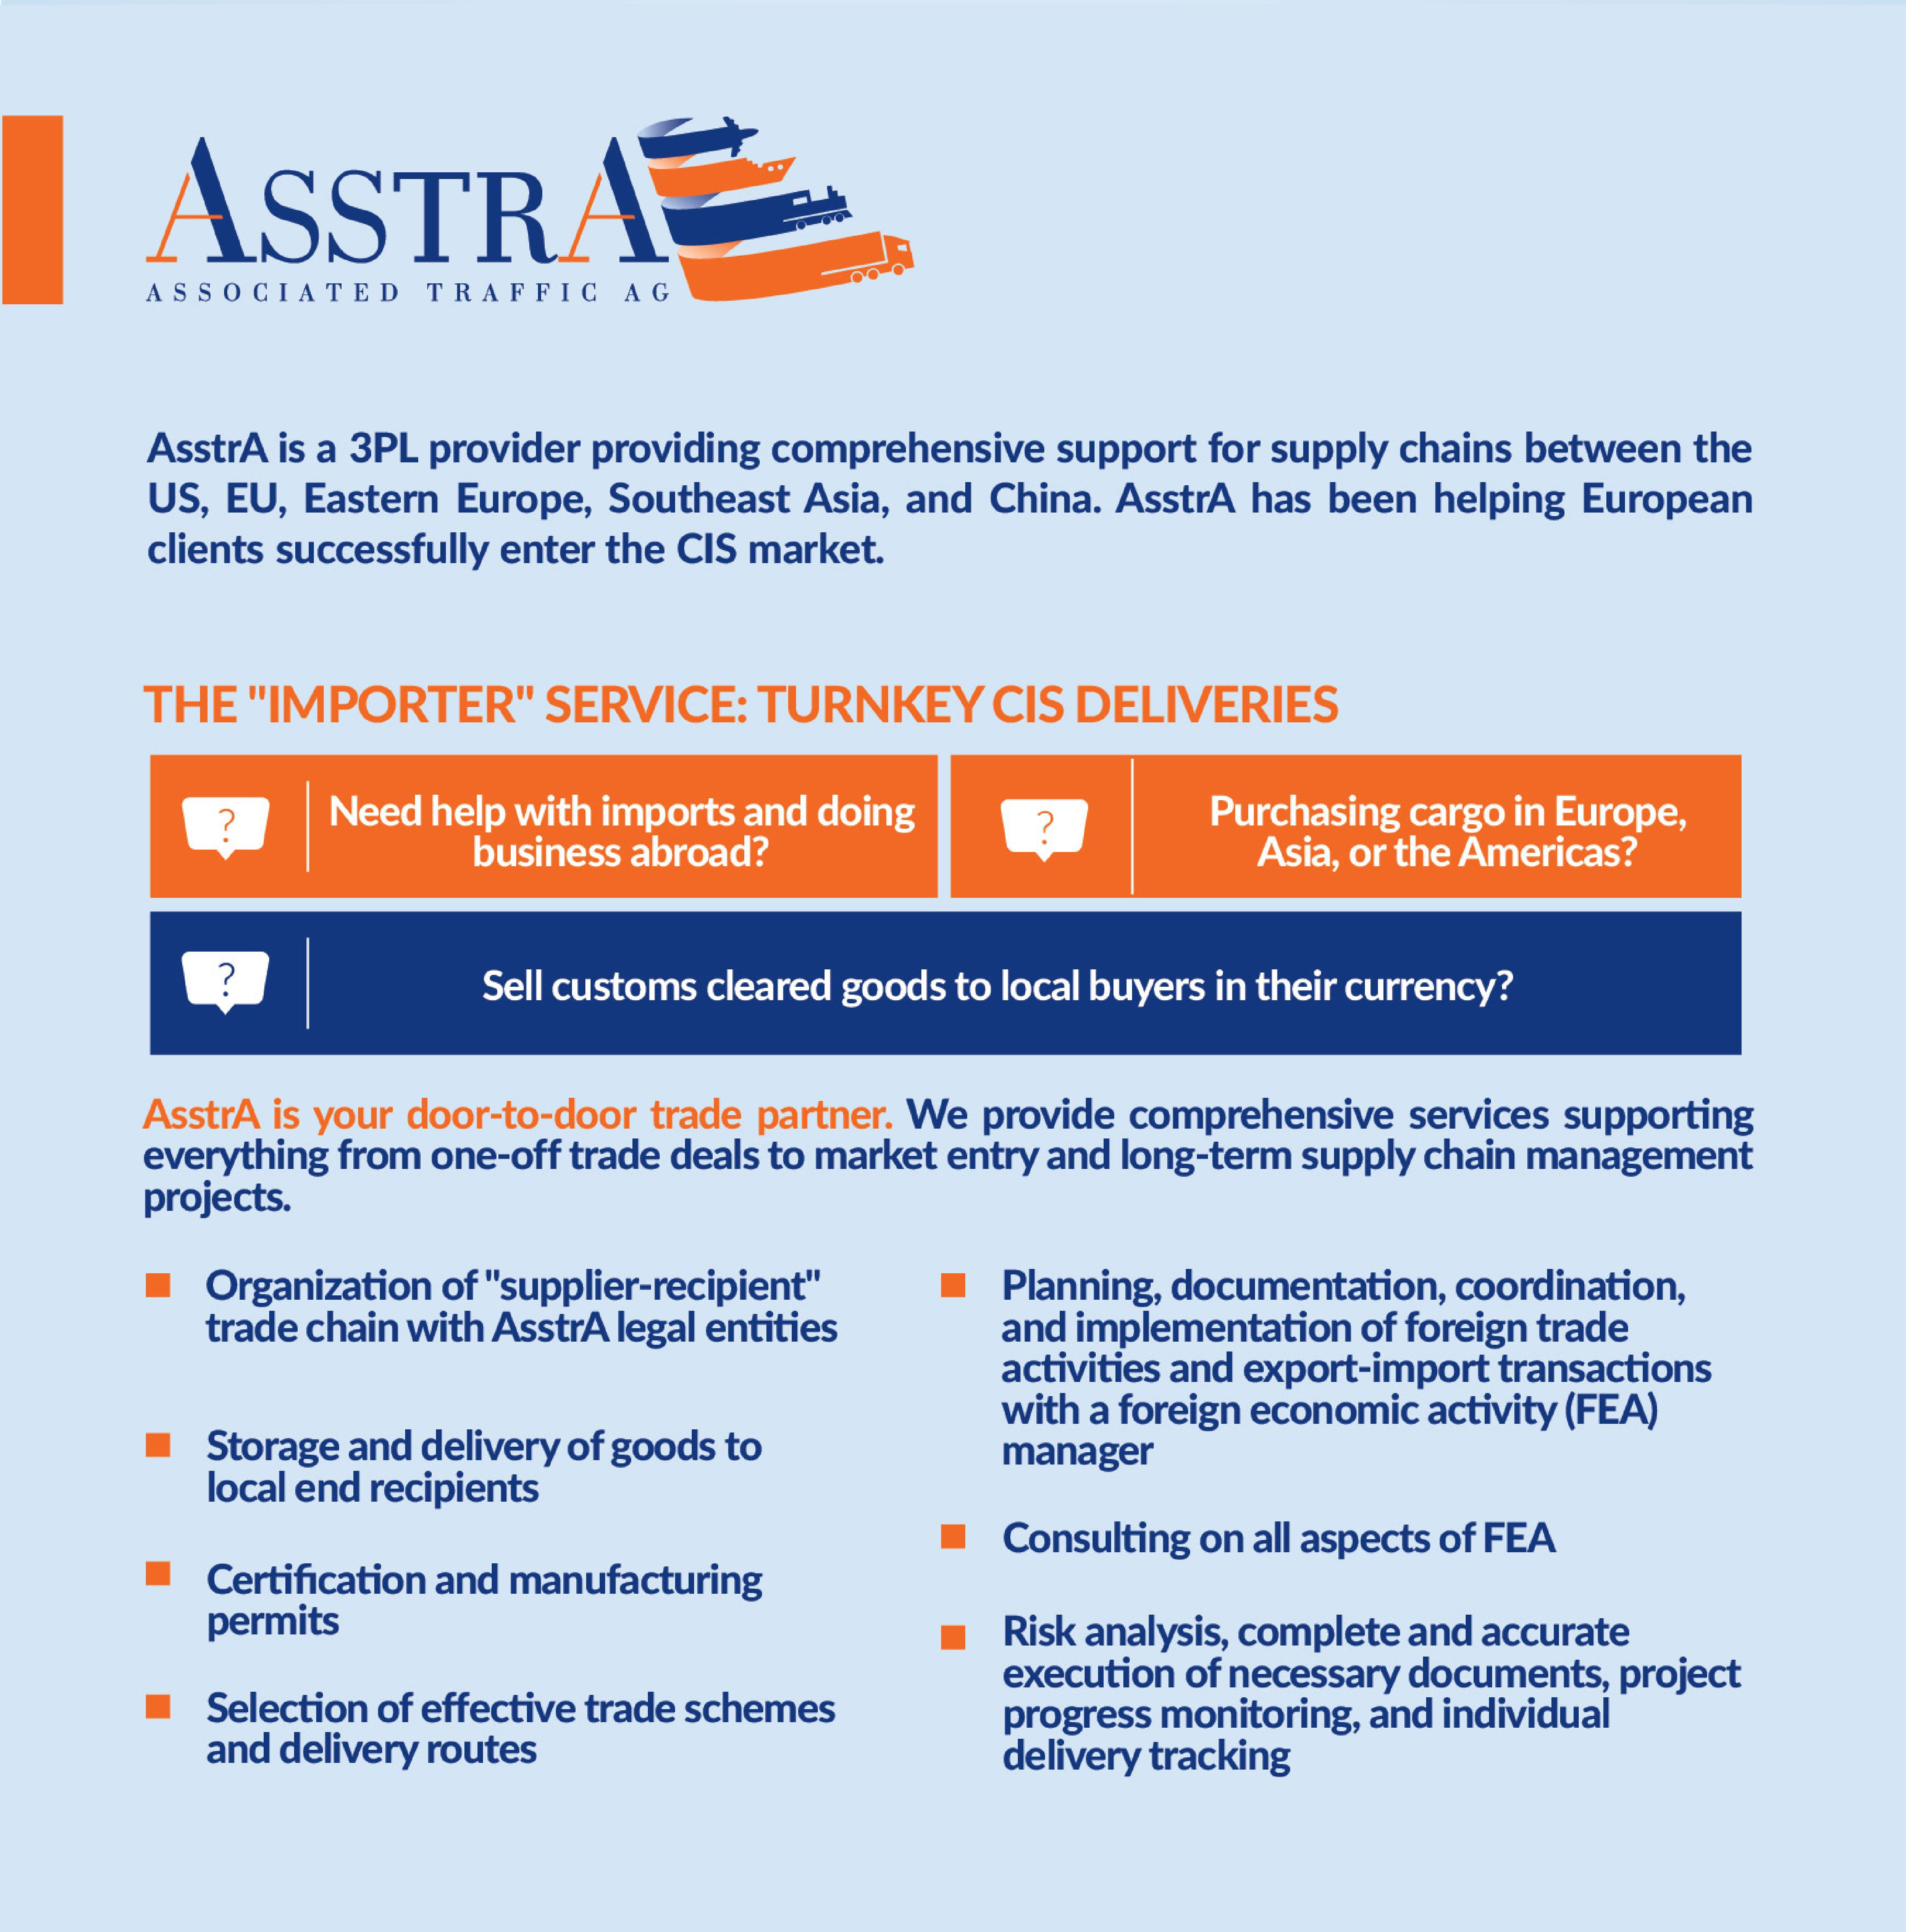 Trade services from the company AsstrA